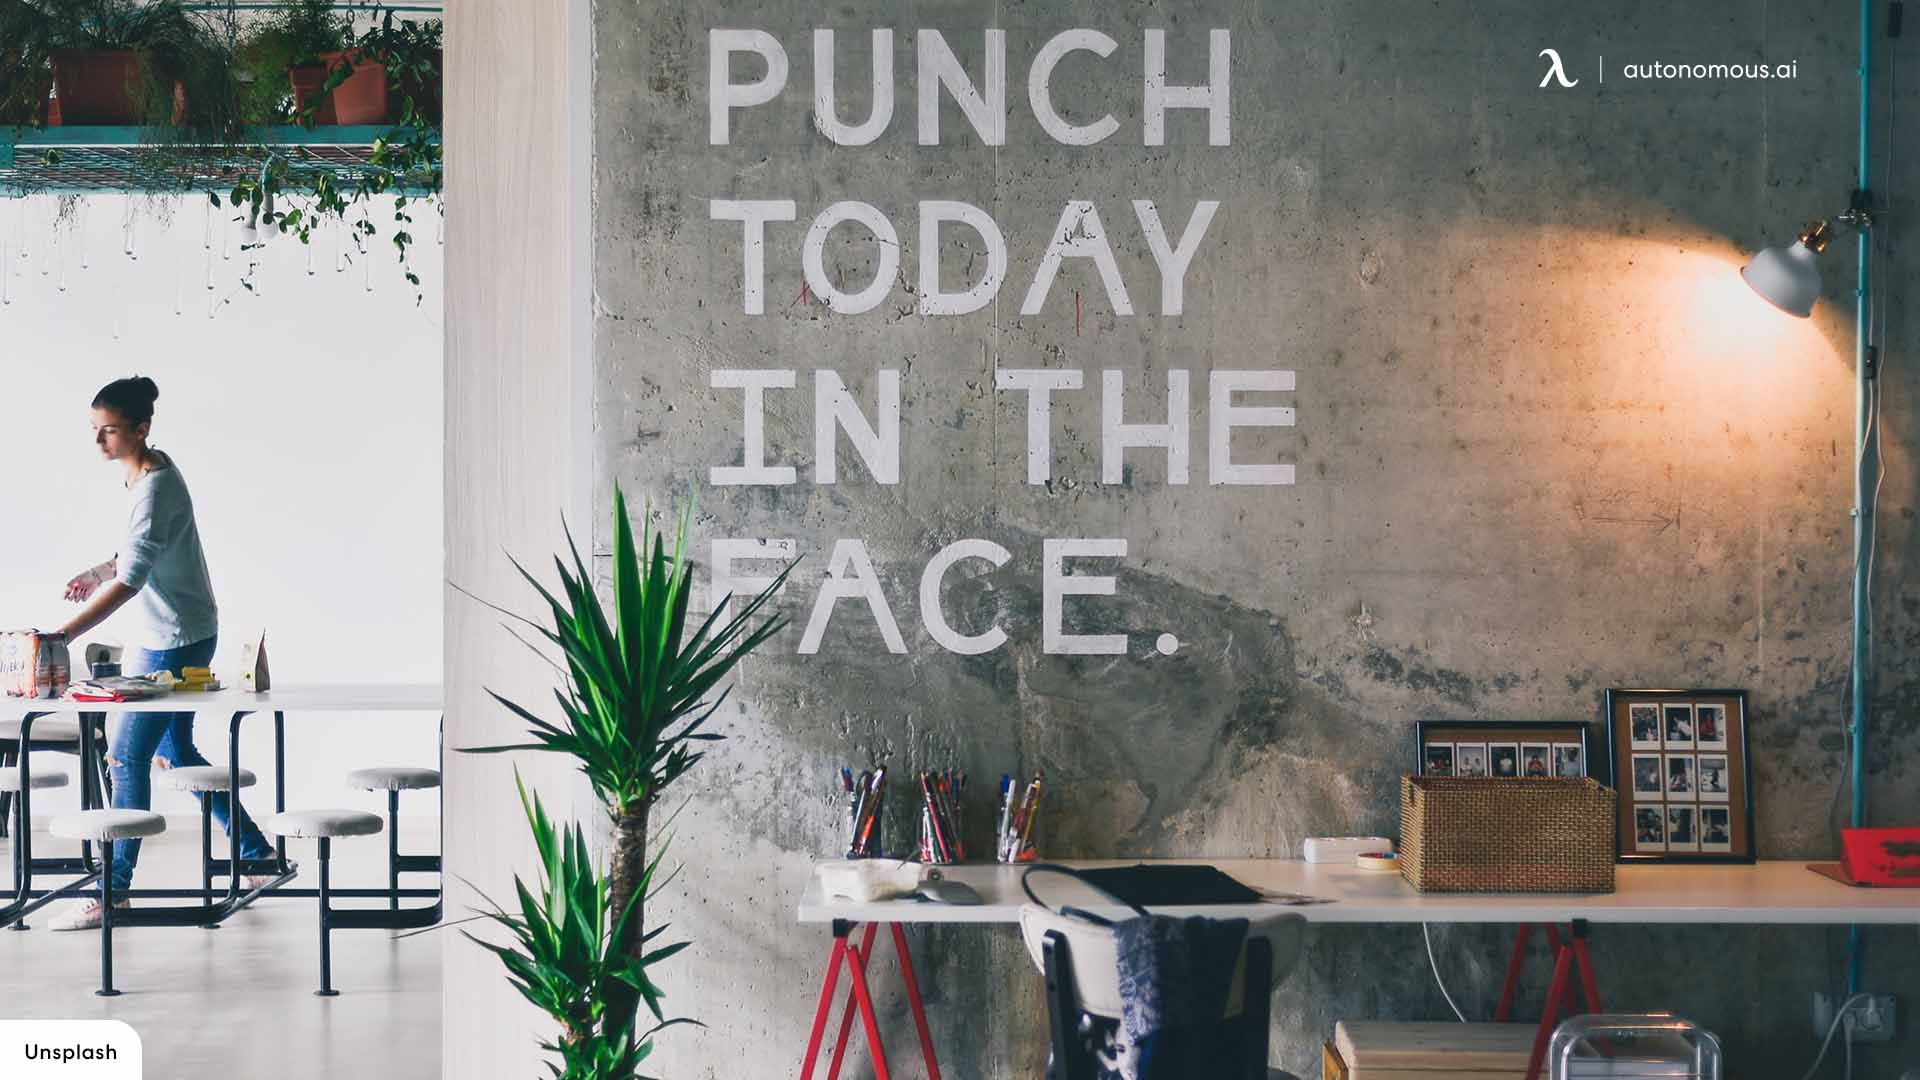 Benefits of Teamwork Quotes as Office Wall Décor